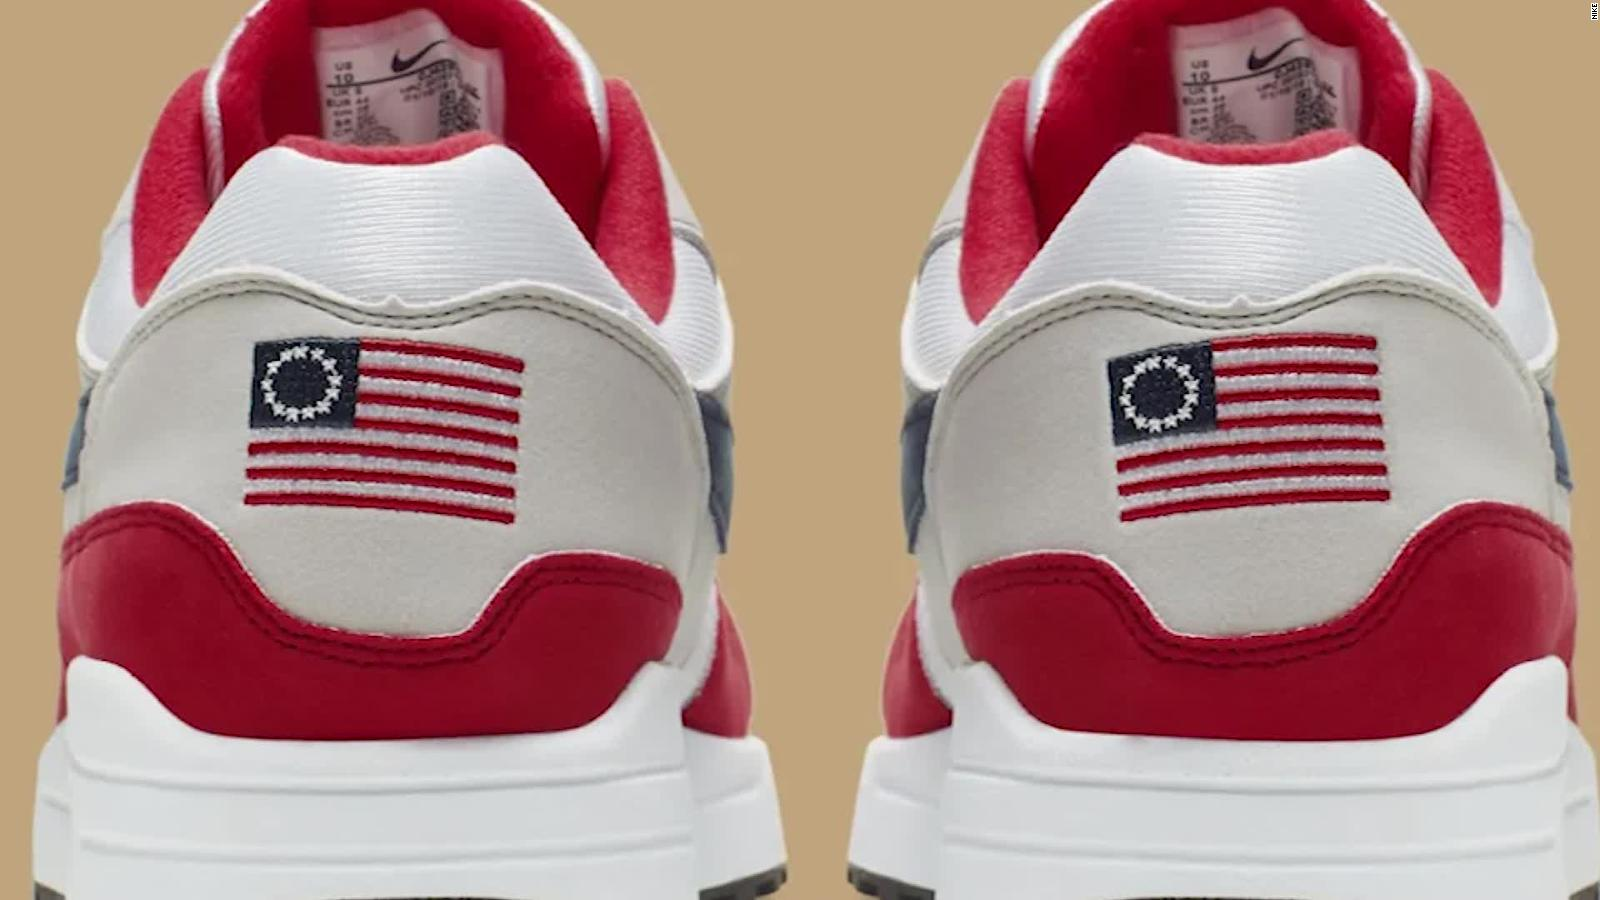 Nike featuring Betsy Ross flag canceled